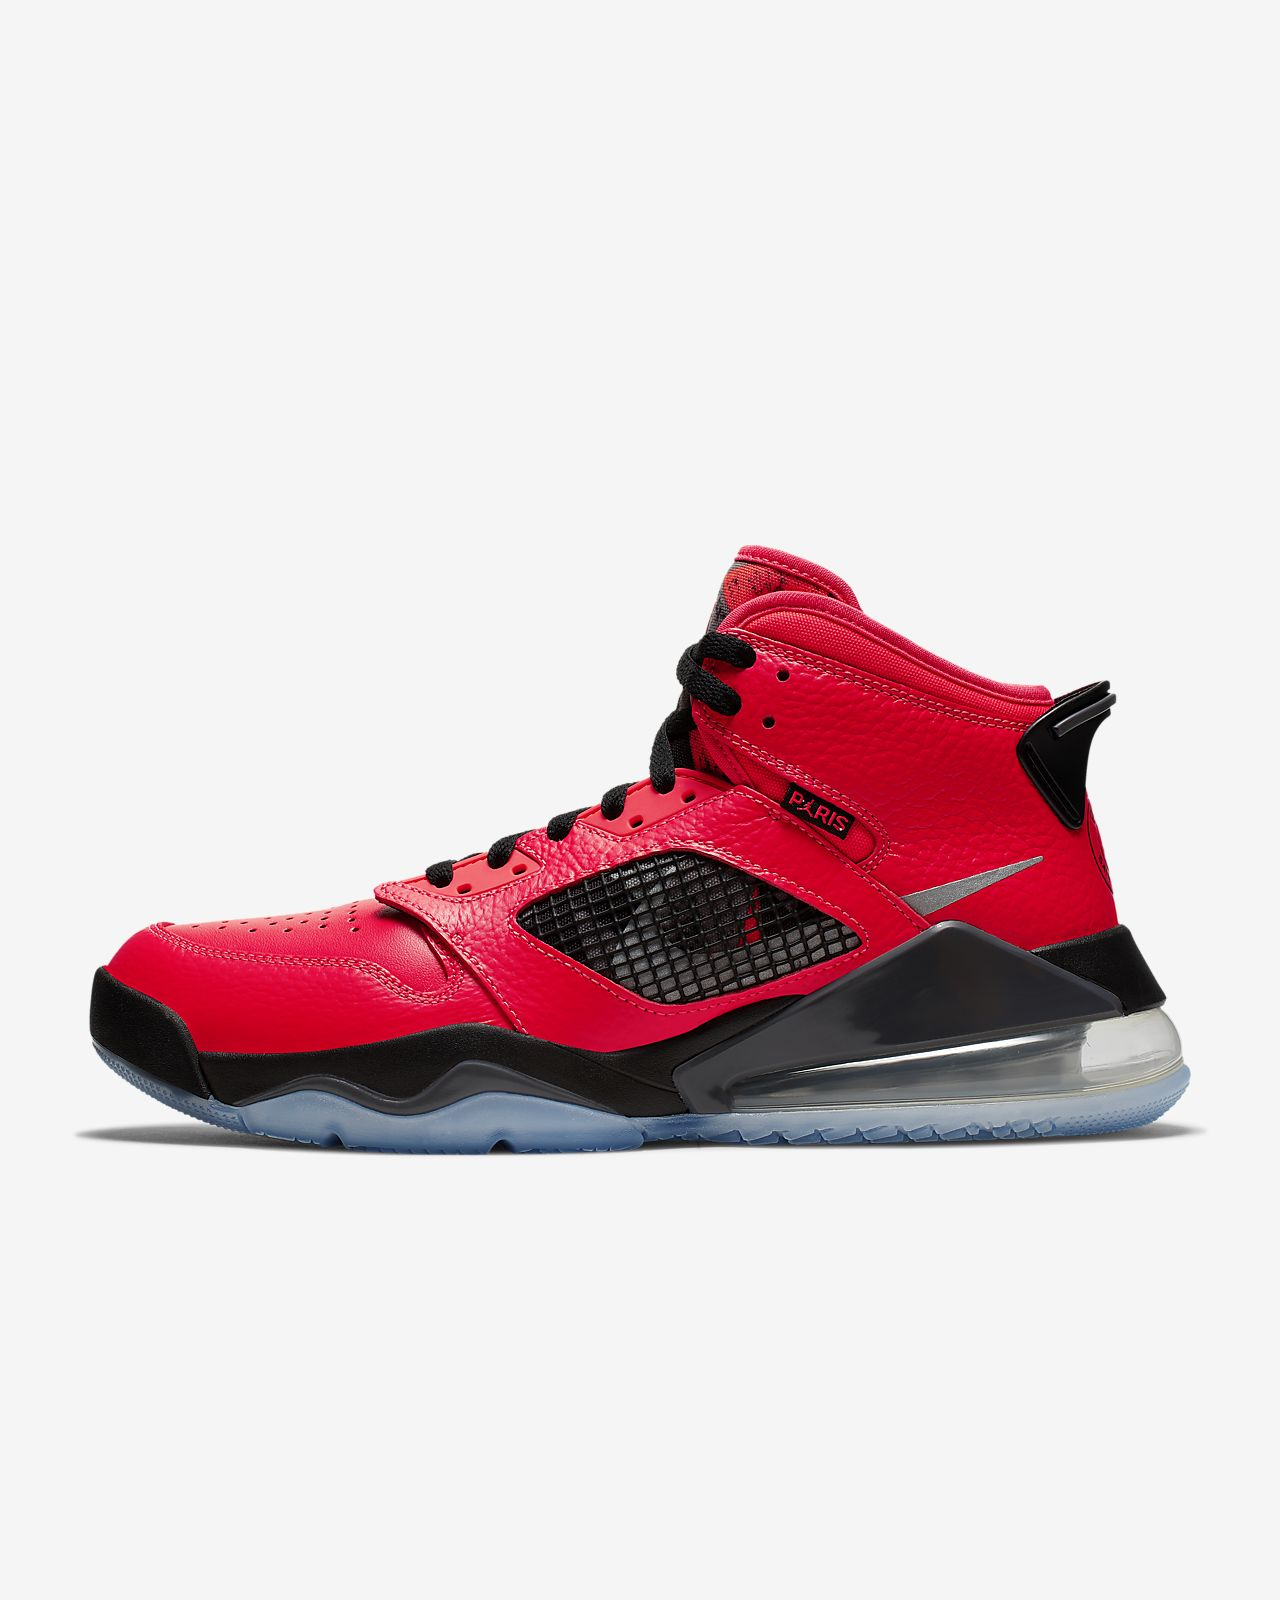 Jordan Mars 270 Paris Saint-Germain Herrenschuh